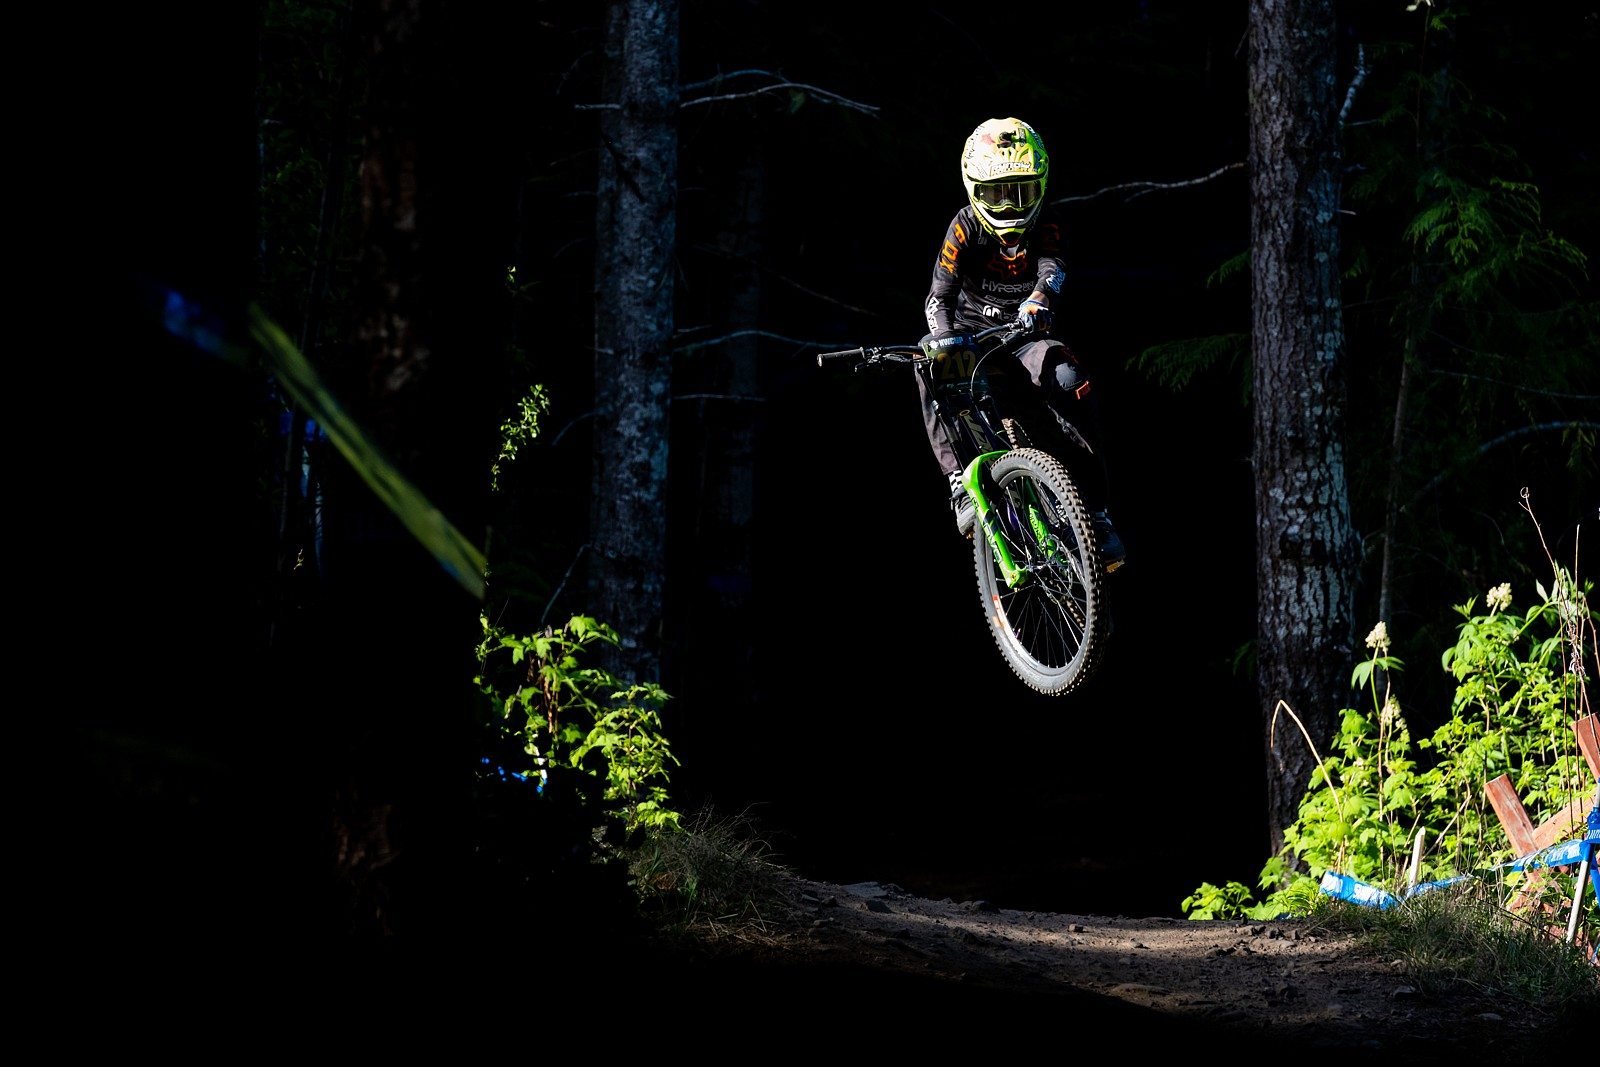 GROMS Blasting at the NW Cup - #USDH - Zuestman - Mountain Biking Pictures - Vital MTB